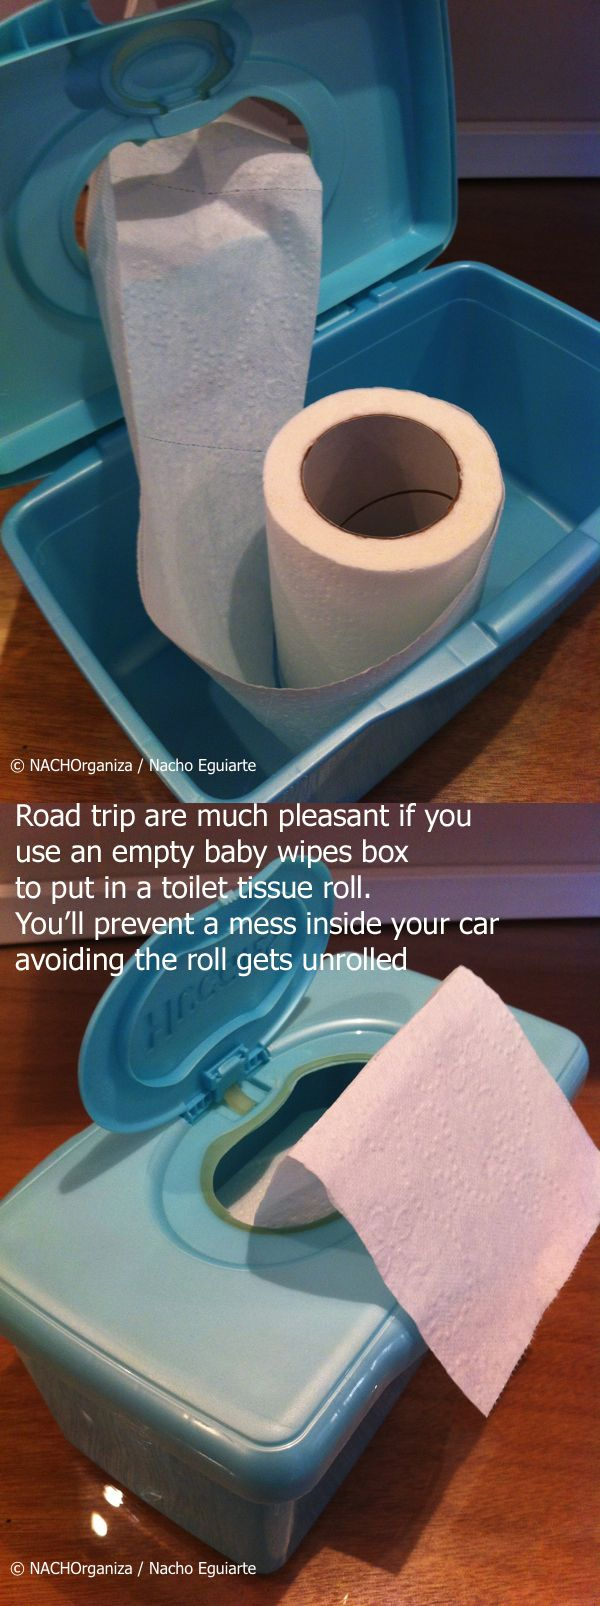 Road trip are much pleasant if you  use an empty baby wipes box  to put in a toilet tissue roll.  You'll prevent a mess inside your car  avoiding the roll gets unrolled    NACHOrganiza • Organization blog in spanish